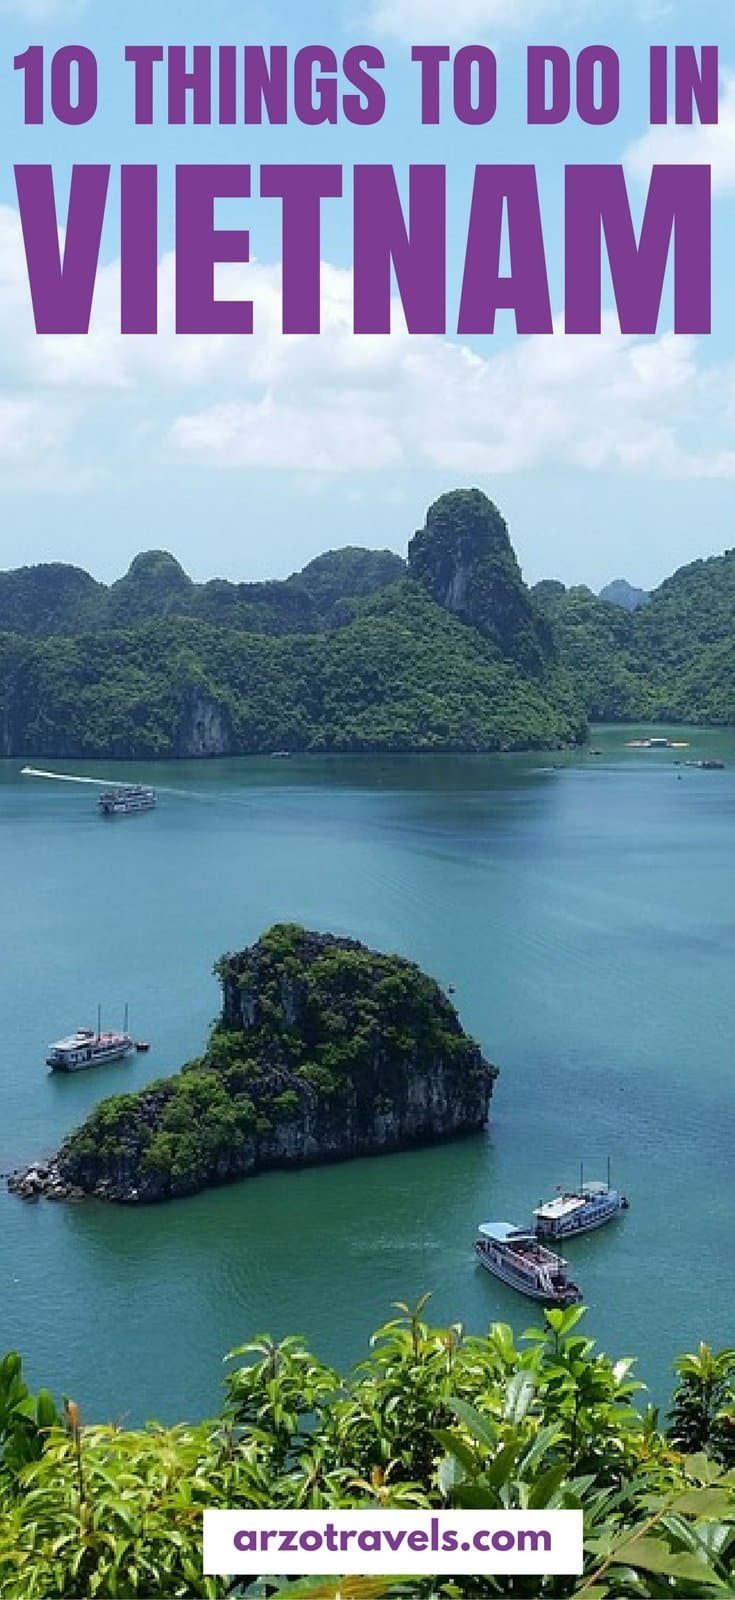 10 top things to do and see in Vietnam as a solo traveler